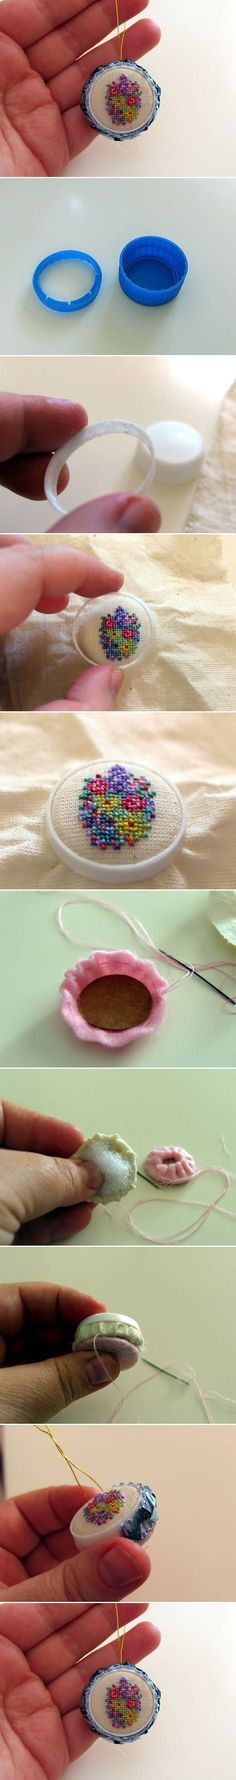 DIY Bottle Cap Ornament DIY Projects